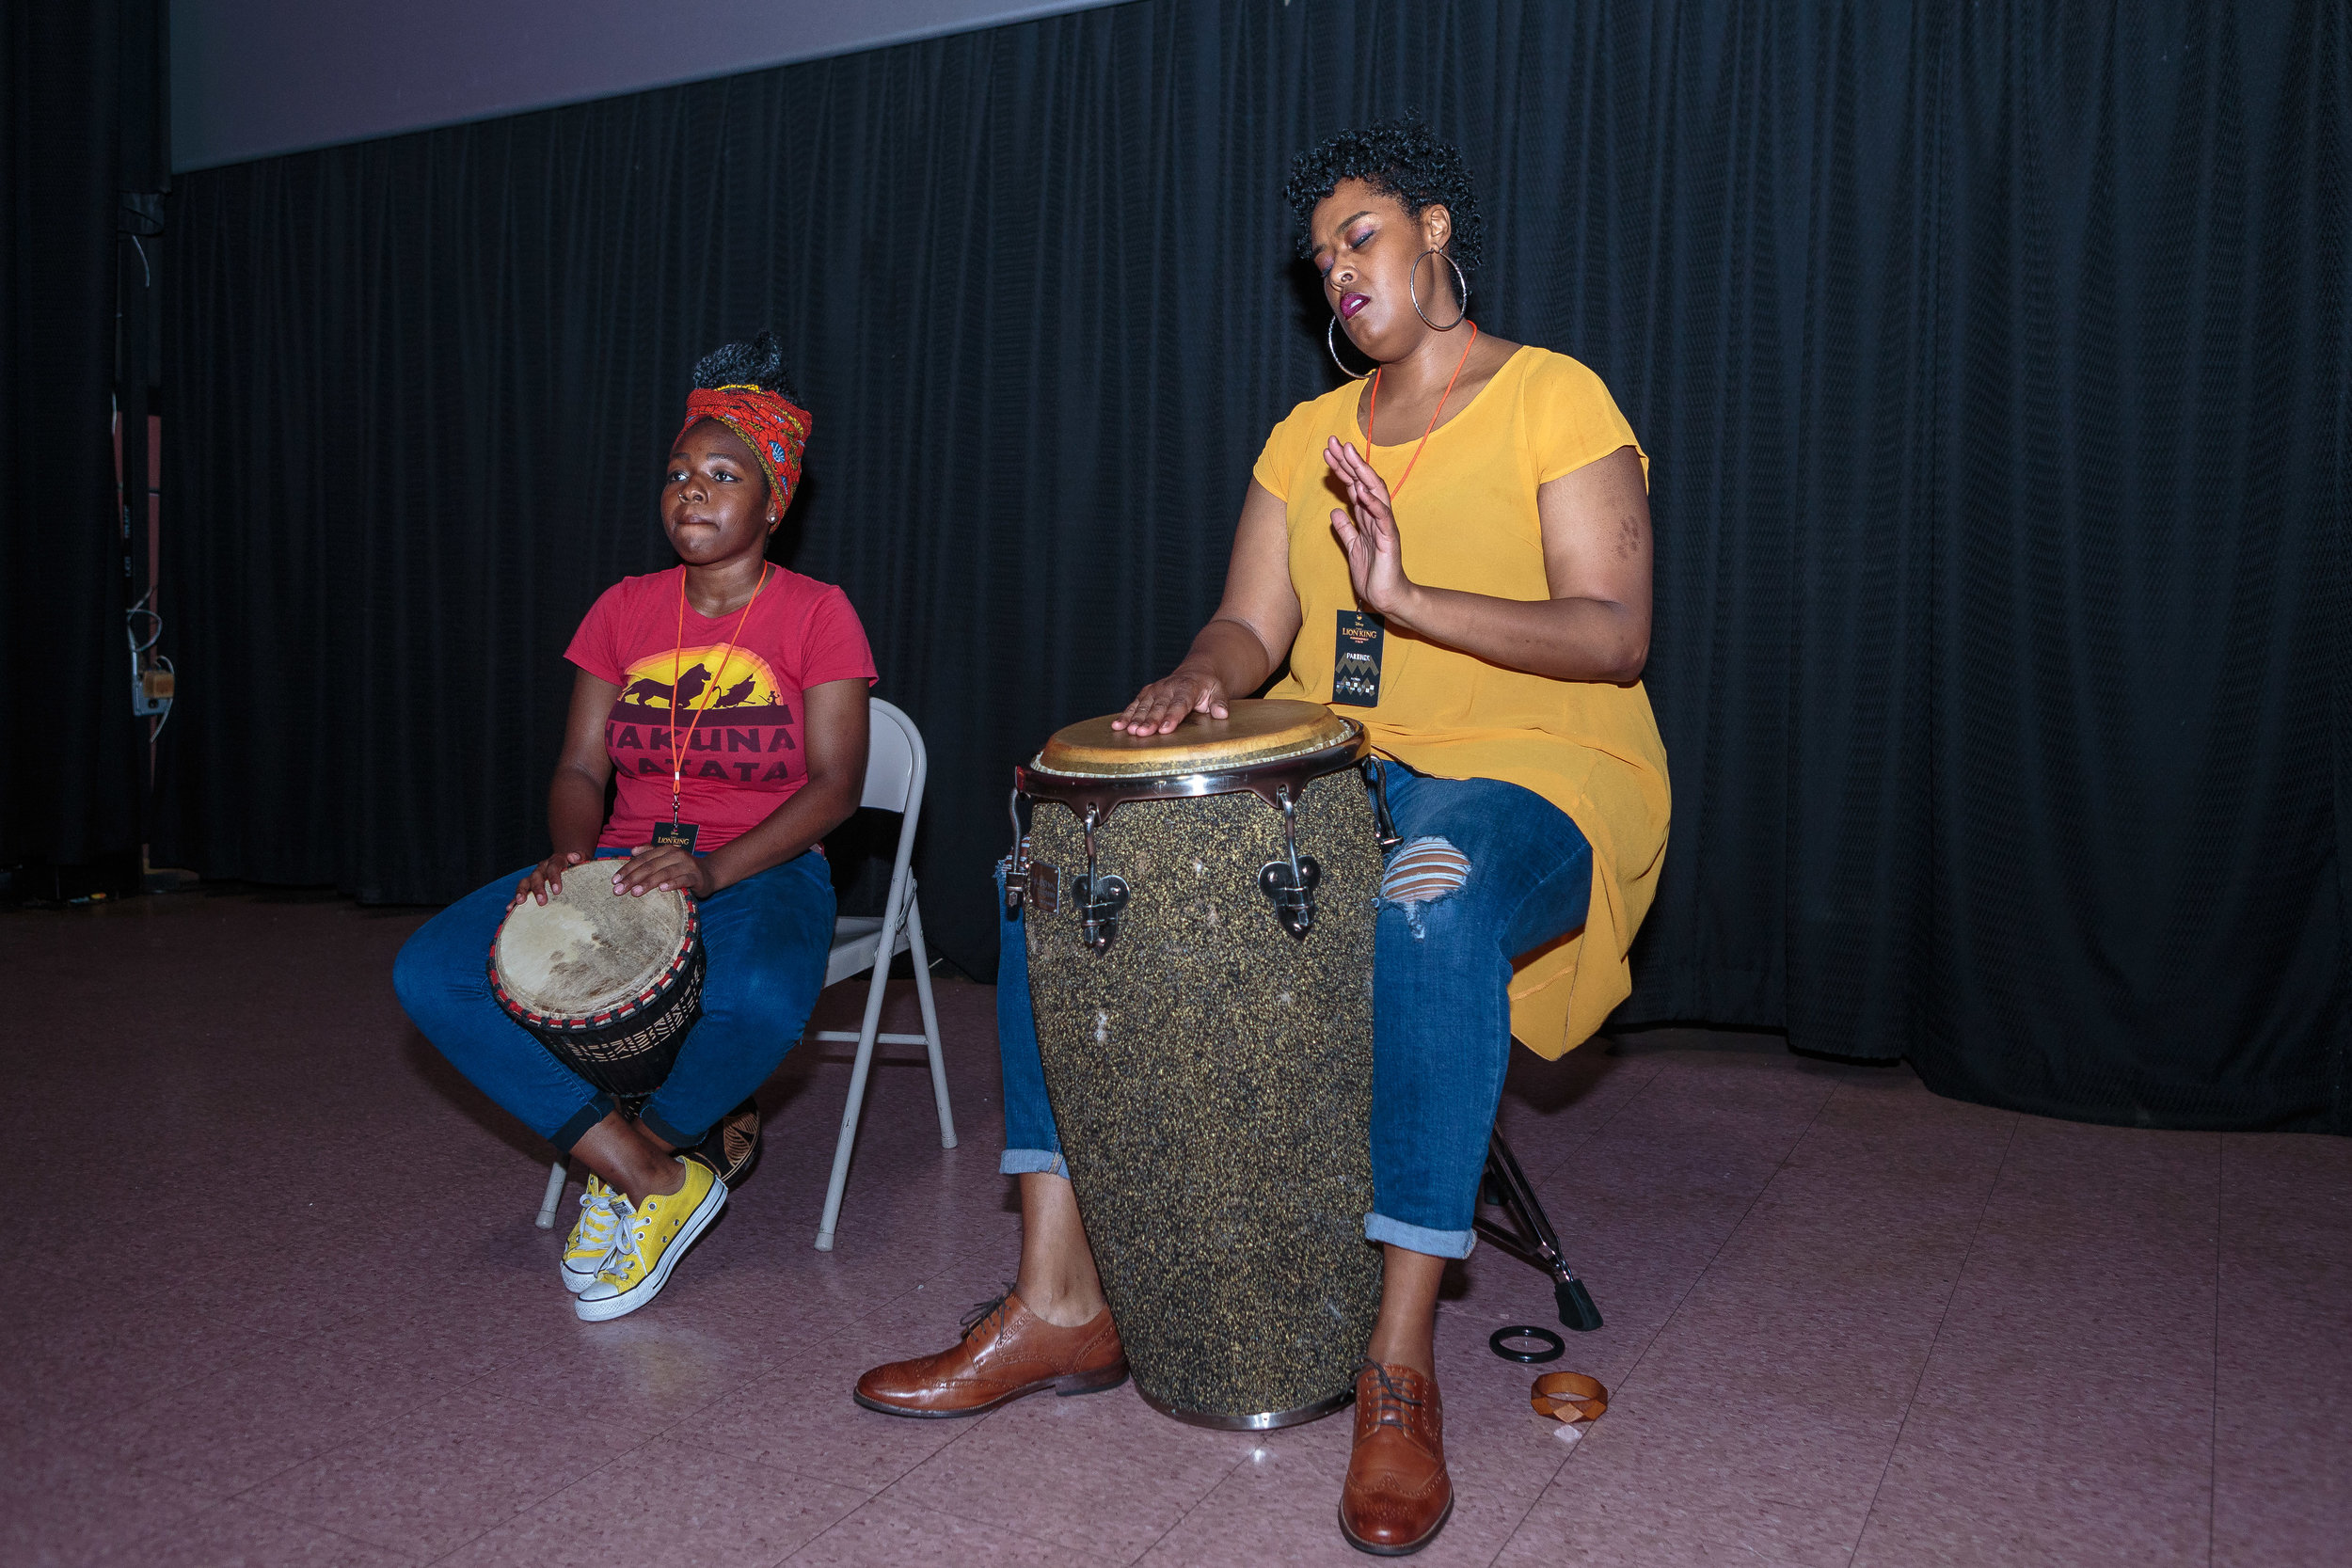 - India performed alongside Drum Like a Lady founder, Latreice Branson, at The Lion King Philly private movie screening hosted by Happily Better After & The Better Give Back Foundation on July 18, 2019.